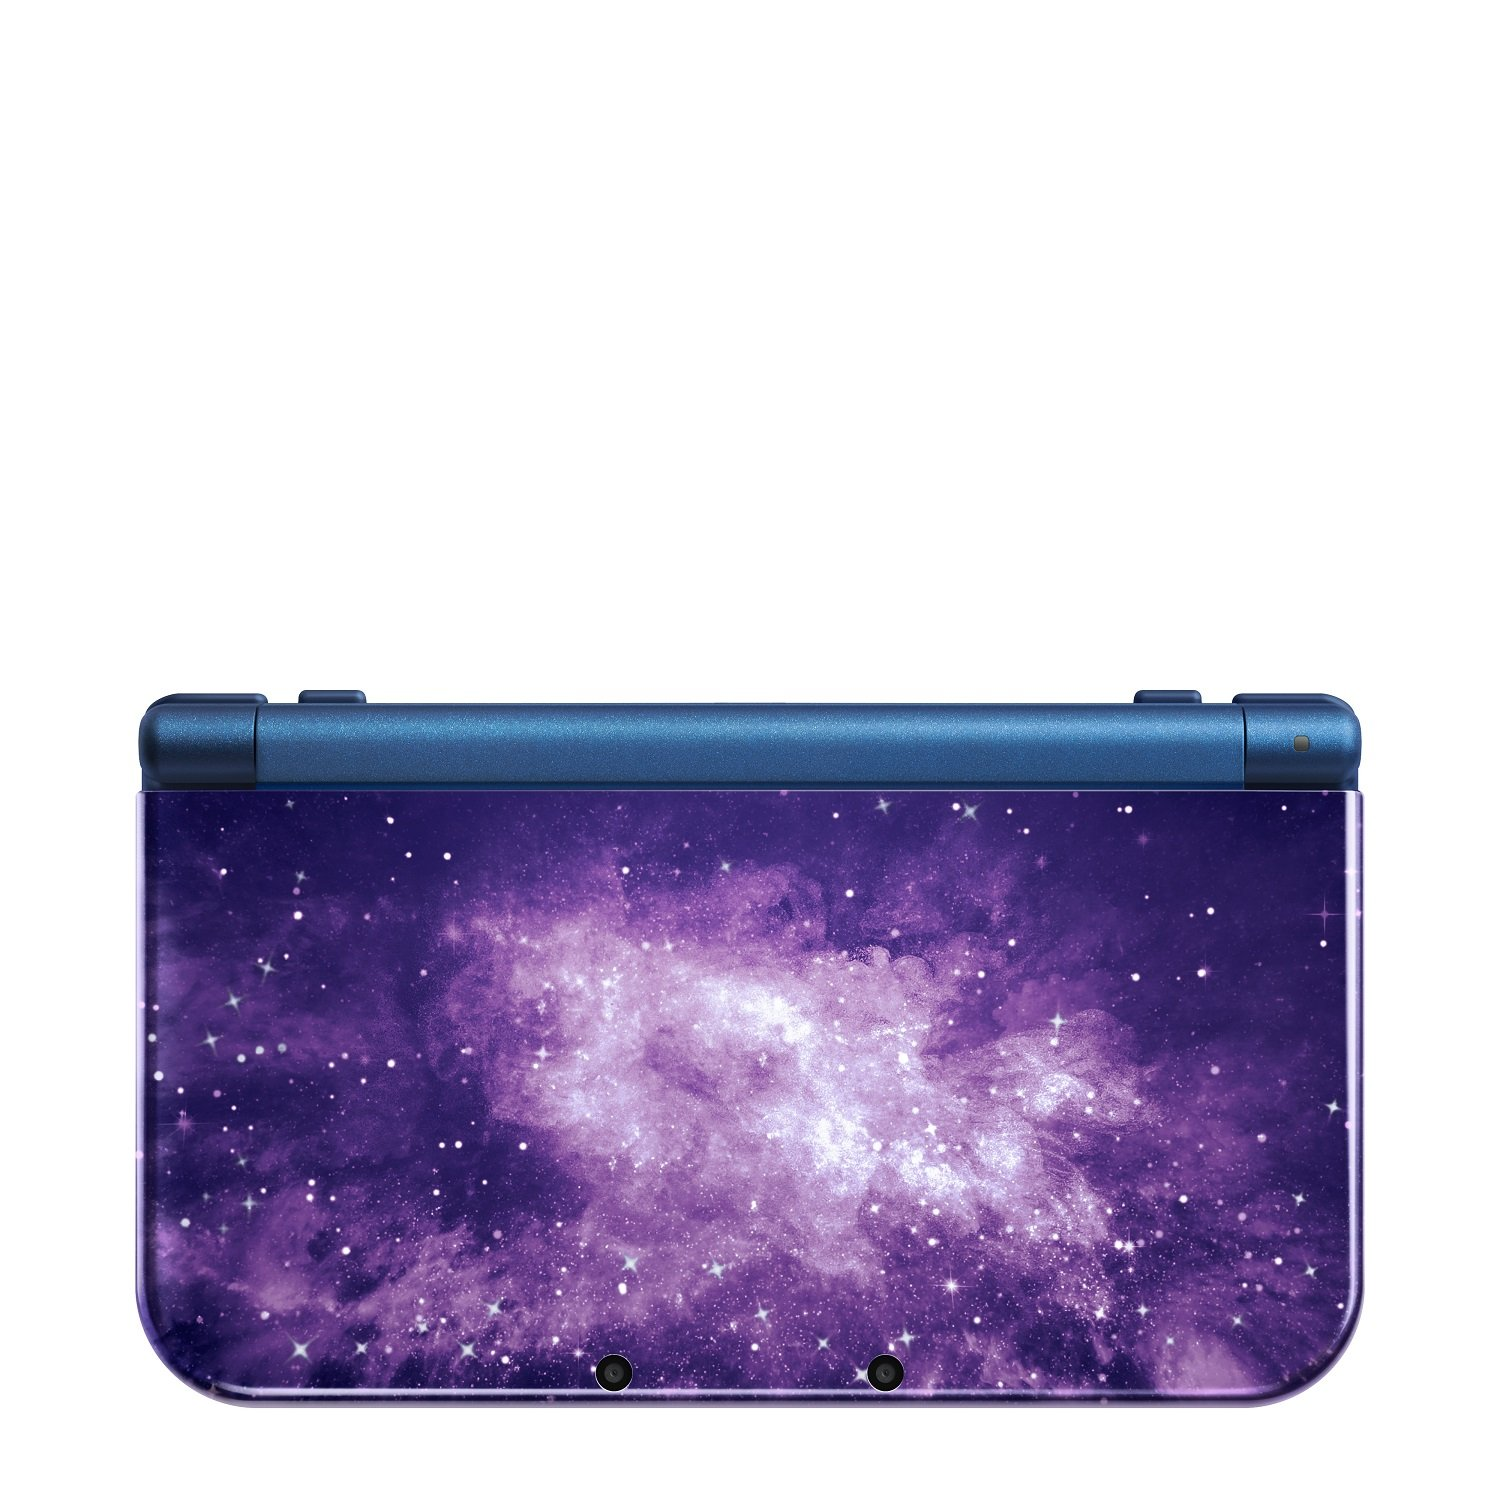 Nintendo New 3DS XL - Galaxy Style by Nintendo (Image #5)